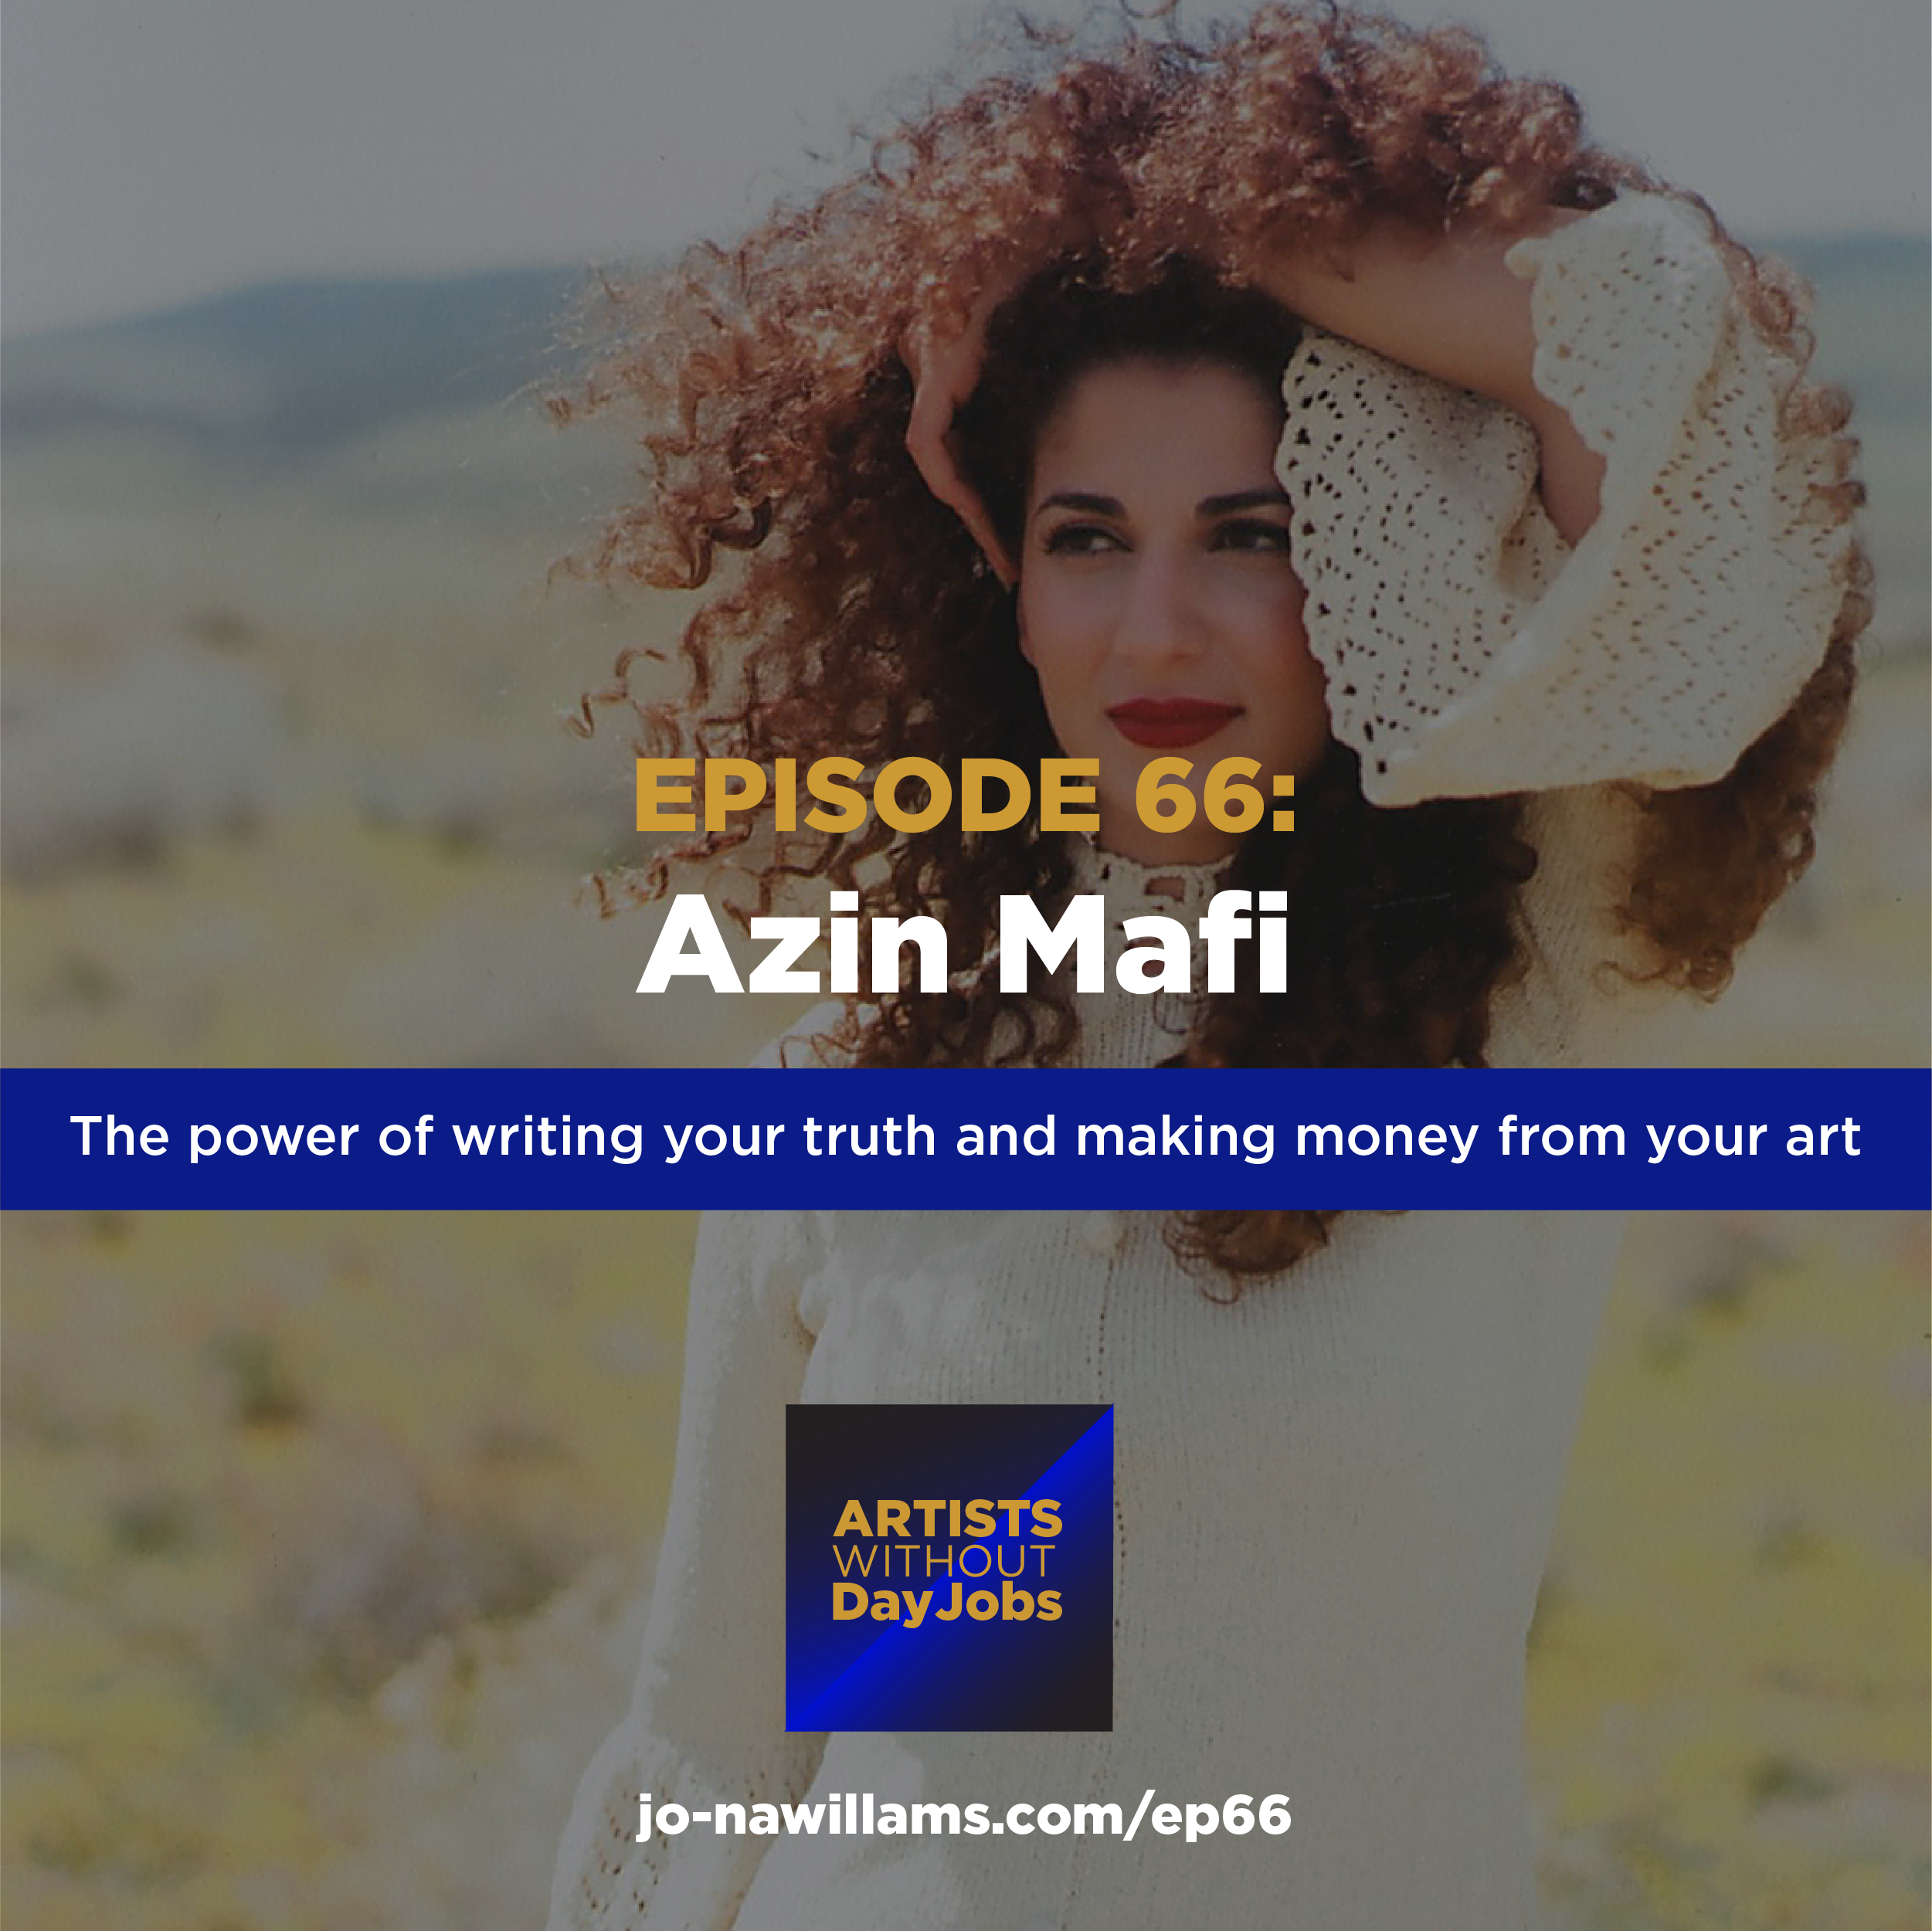 Ep 66: The power of writing your truth and making money from your art w/ Azin Mafi